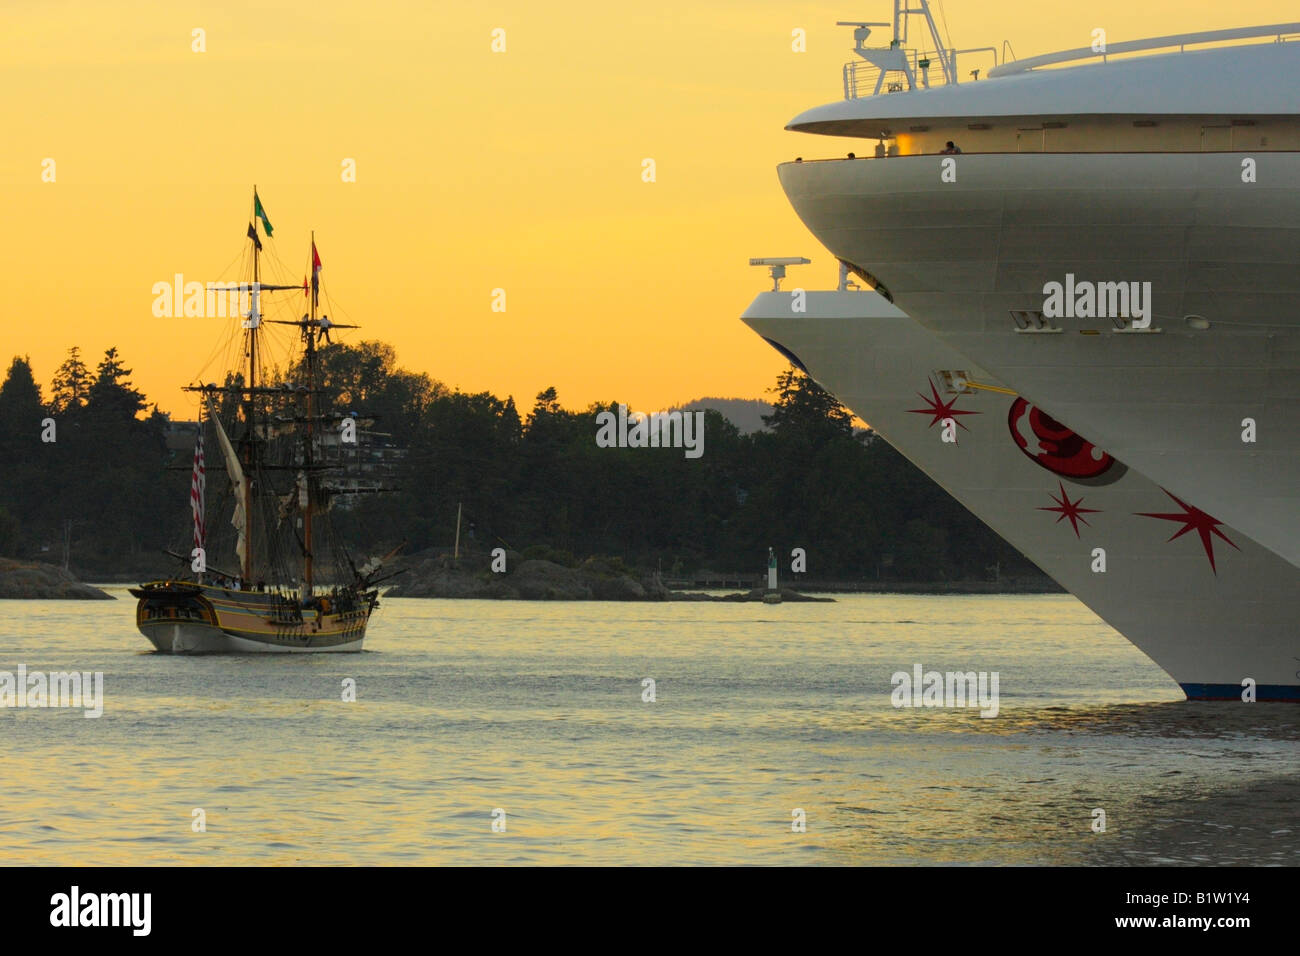 Docked cruise ships and Lady Washington tall ship entering harbour at sunset-Victoria, British Columbia, Canada. - Stock Image